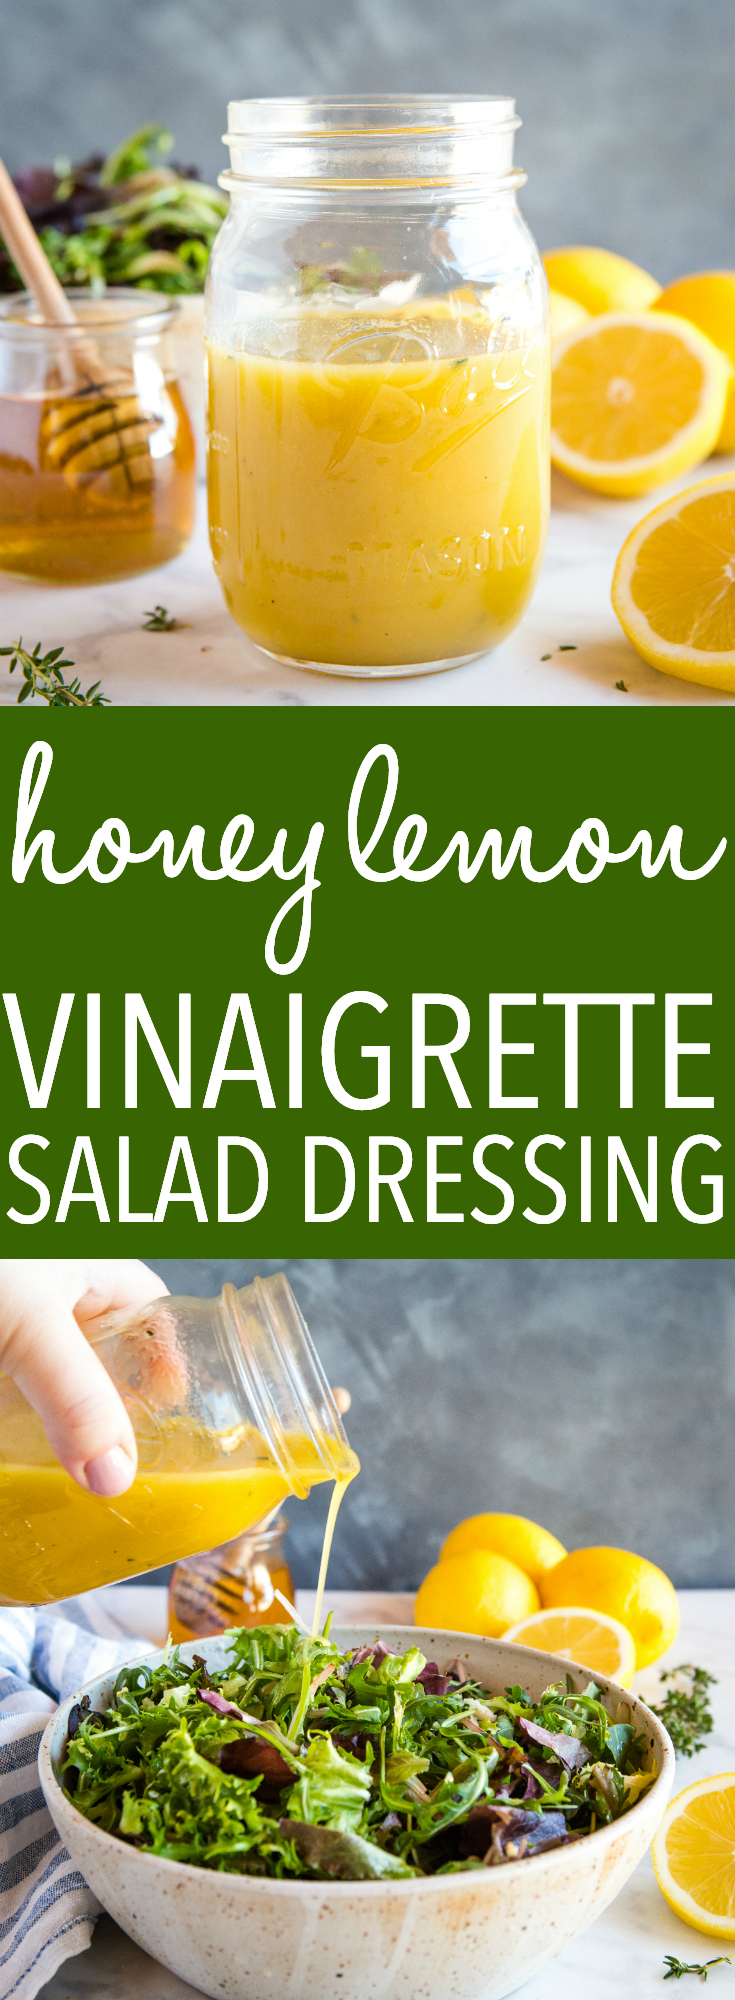 This easy and healthy Honey Lemon Vinaigrette Salad Dressing is perfect for all your favourite salads, and it's simple to make with only a few basic ingredients! Recipe from thebusybaker.ca! #salad #saladdressing #healthy #vegetarian #vegan #plantbased #easy #recipe #health #weightloss #spring #summer #cleaneating #eatclean #greens #lemon #honey #natural via @busybakerblog